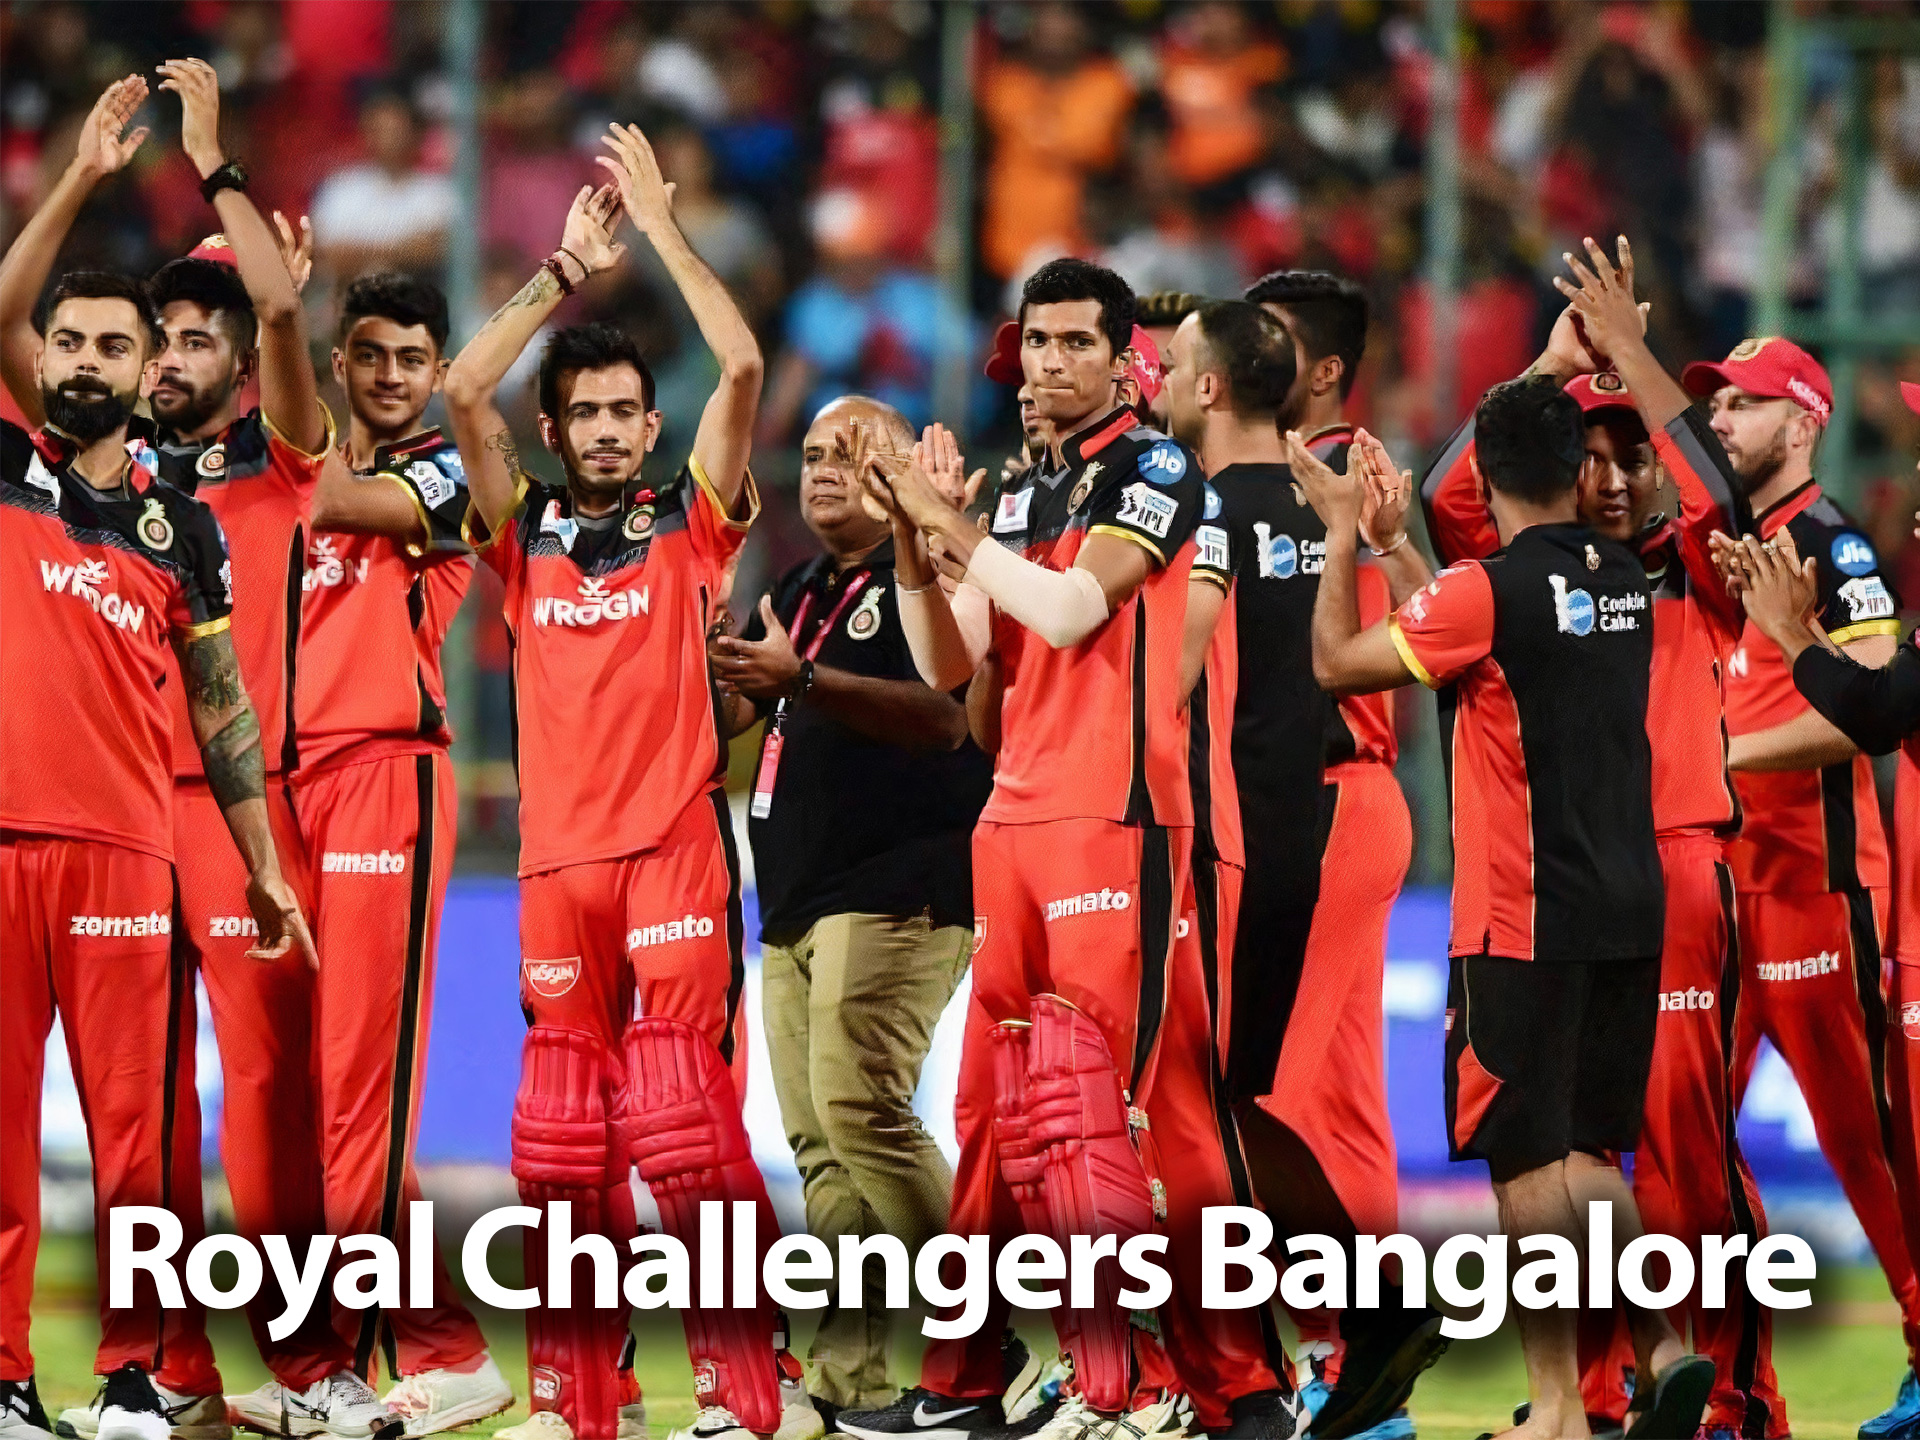 Follow the RCB success and bet on it at the best IPL betting sites in India.